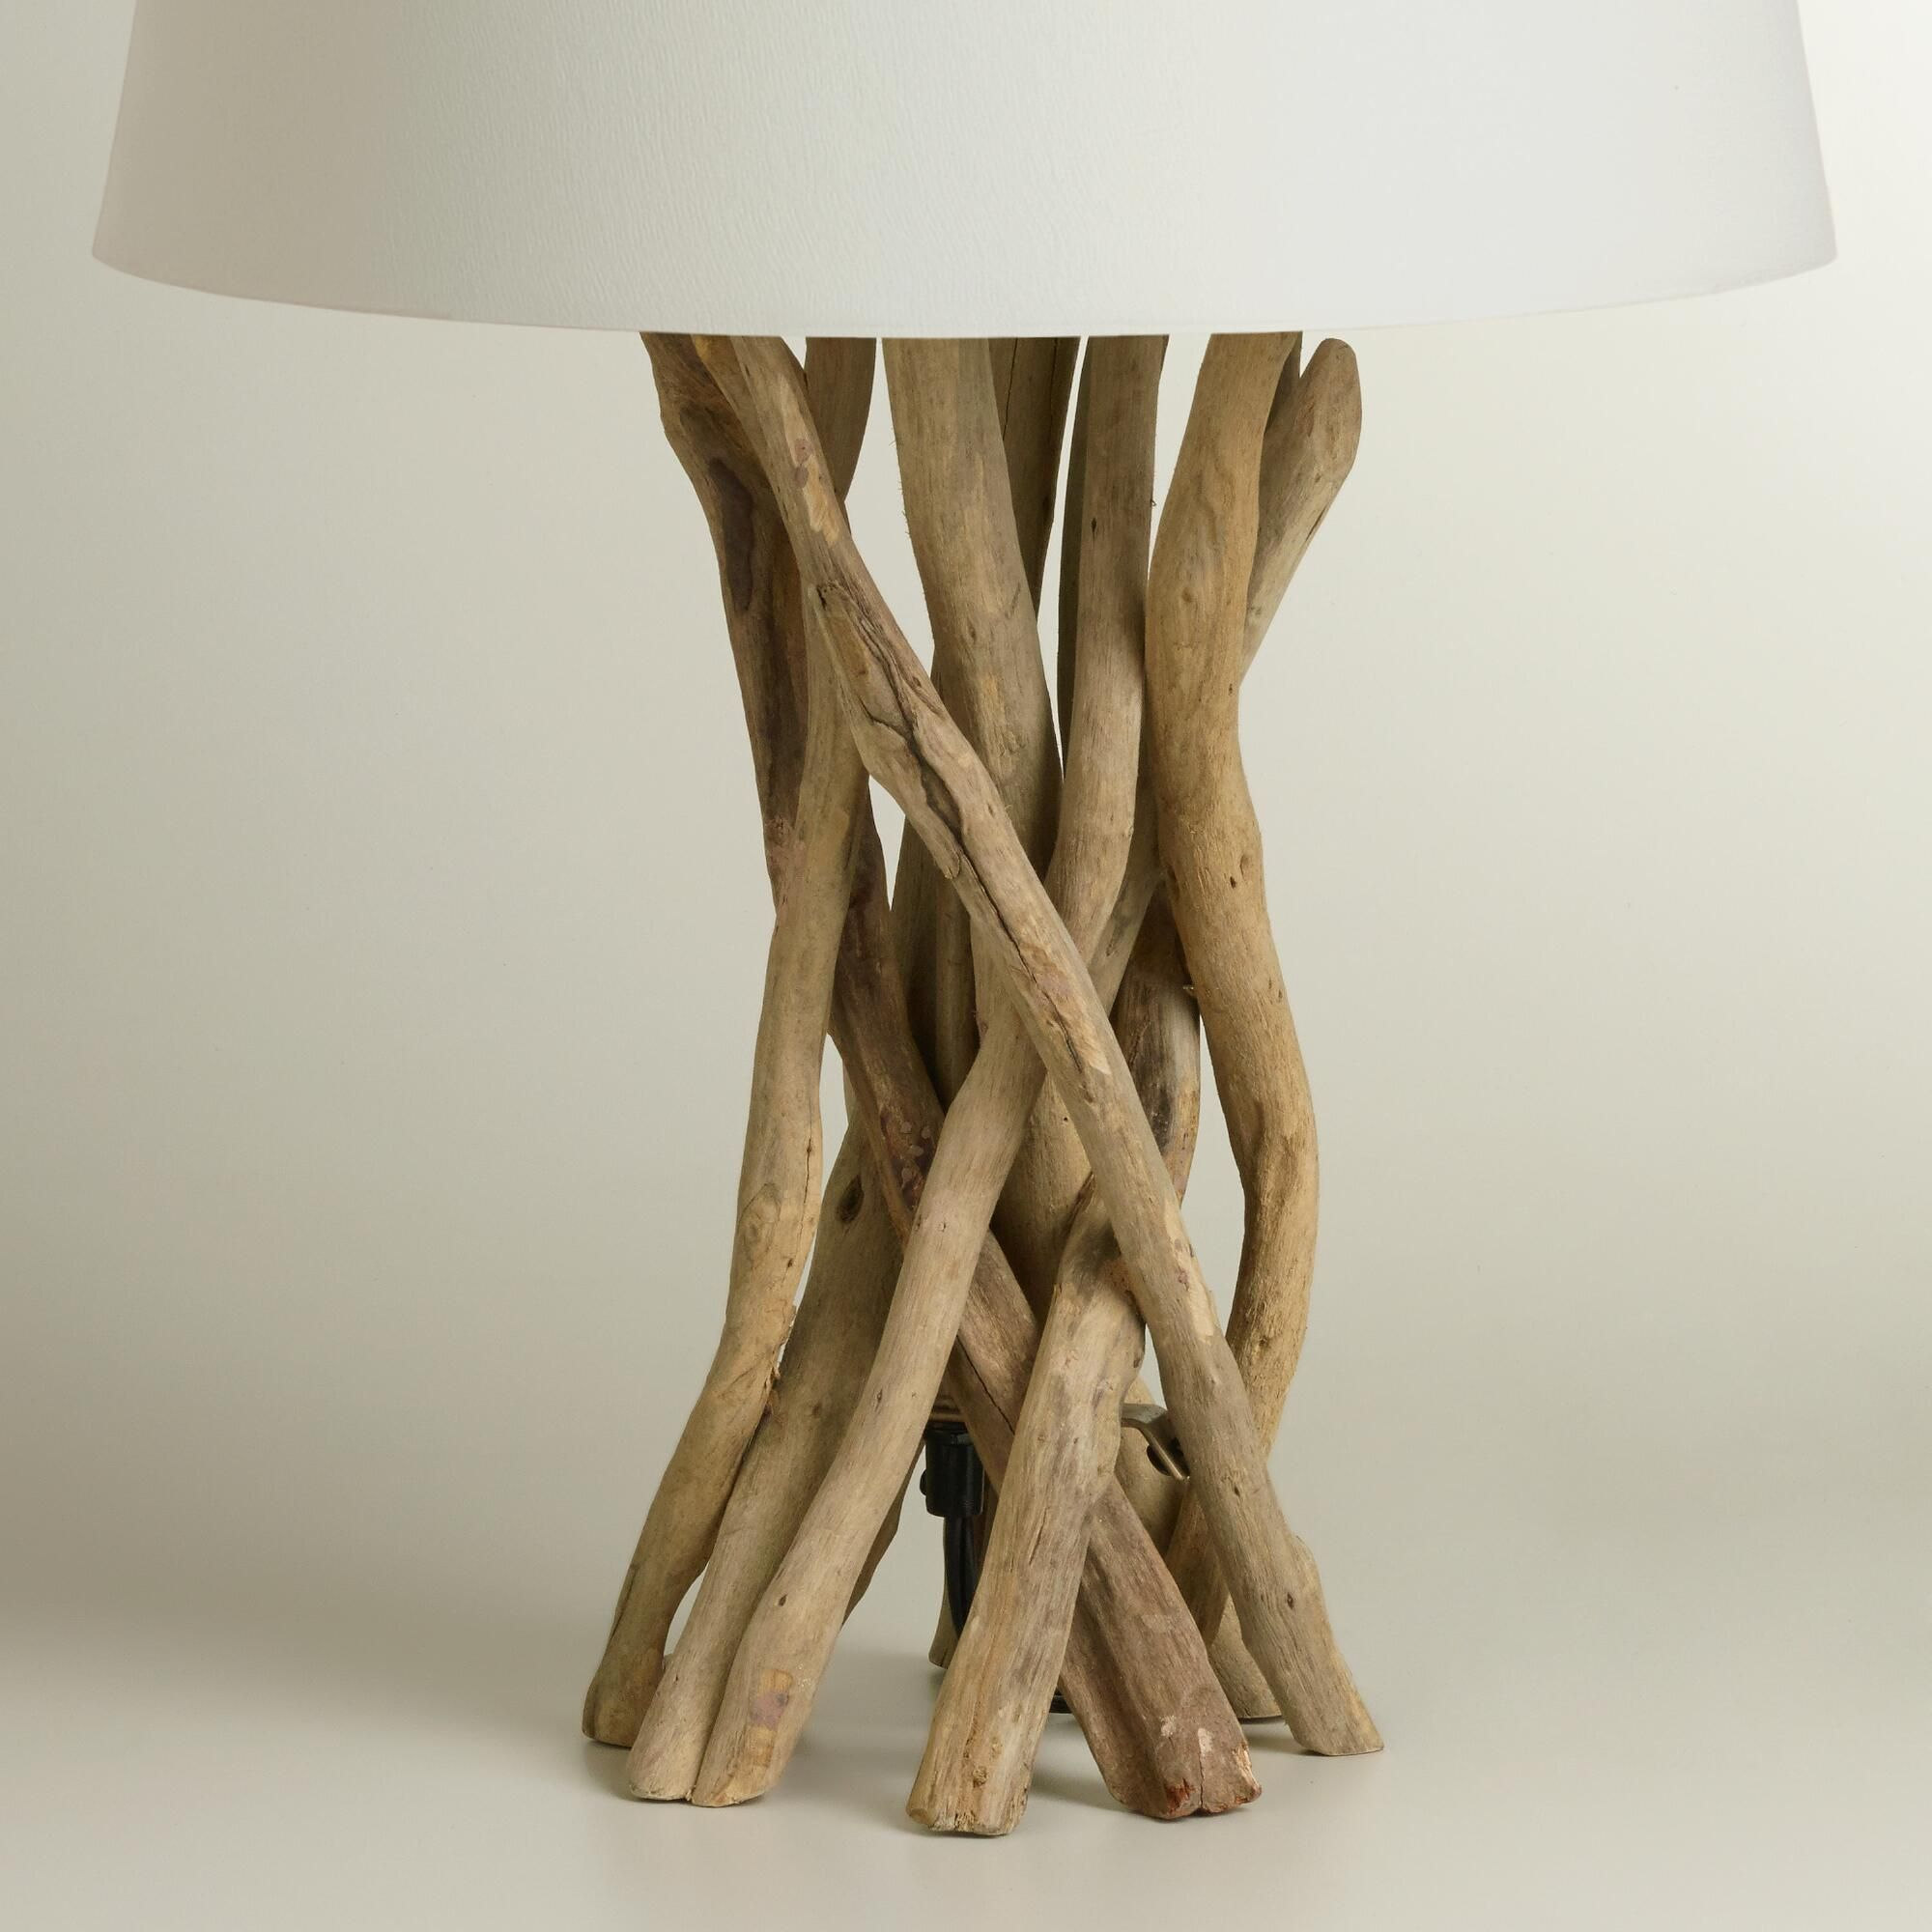 Driftwood table lamp base driftwood table table lamp base and driftwood table lamp base geotapseo Image collections